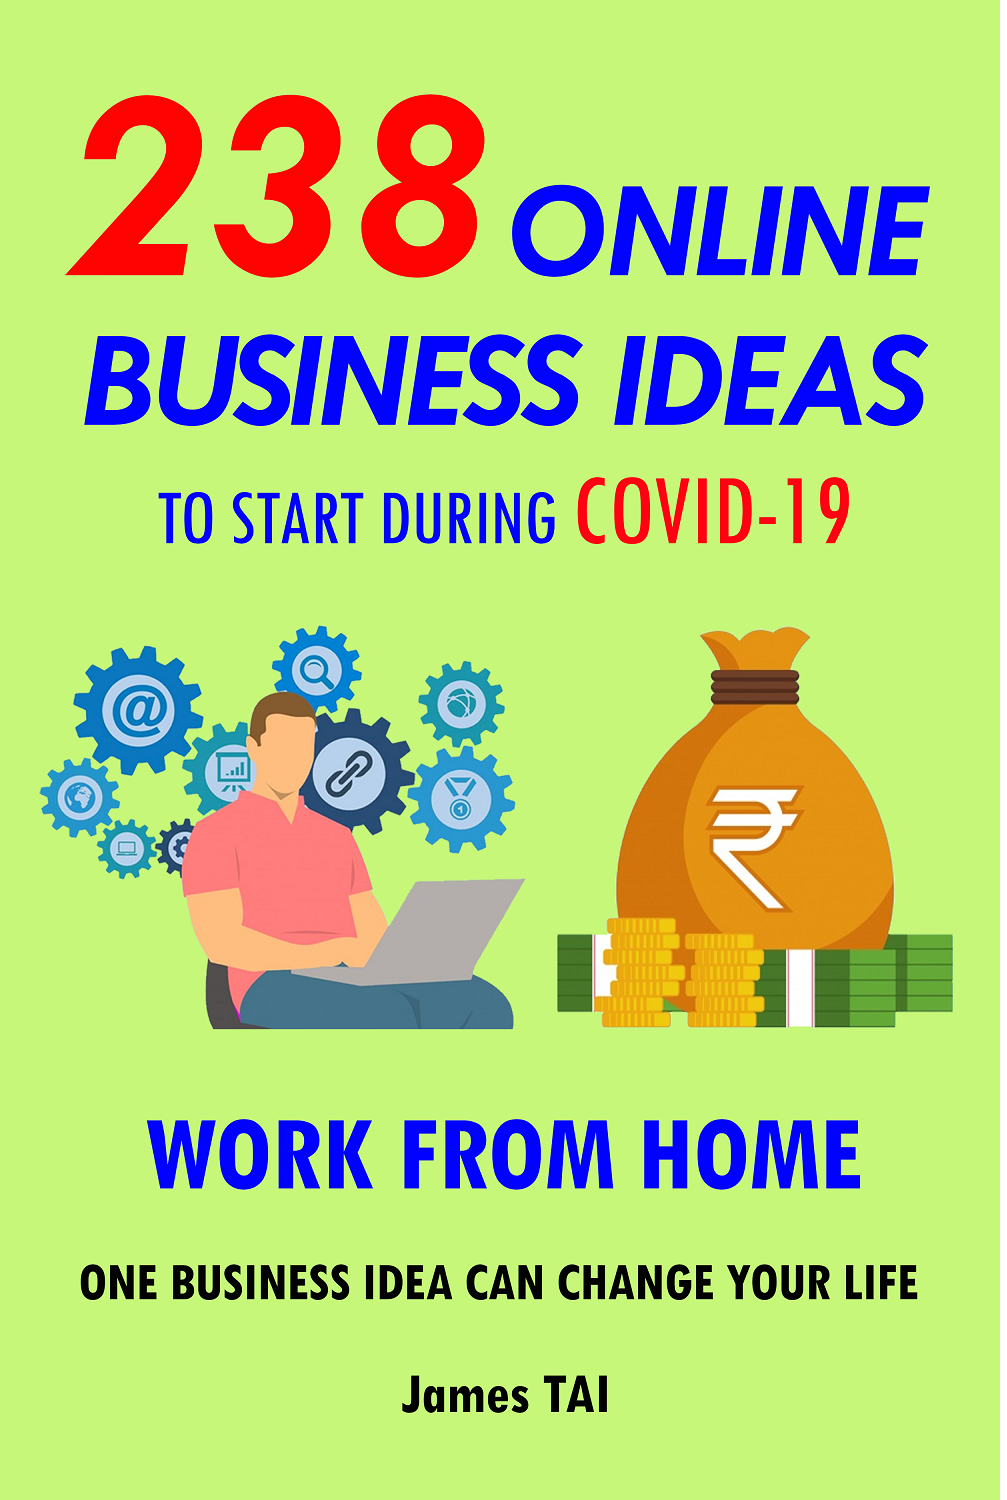 238 Online Business Ideas To Start During Covid-19